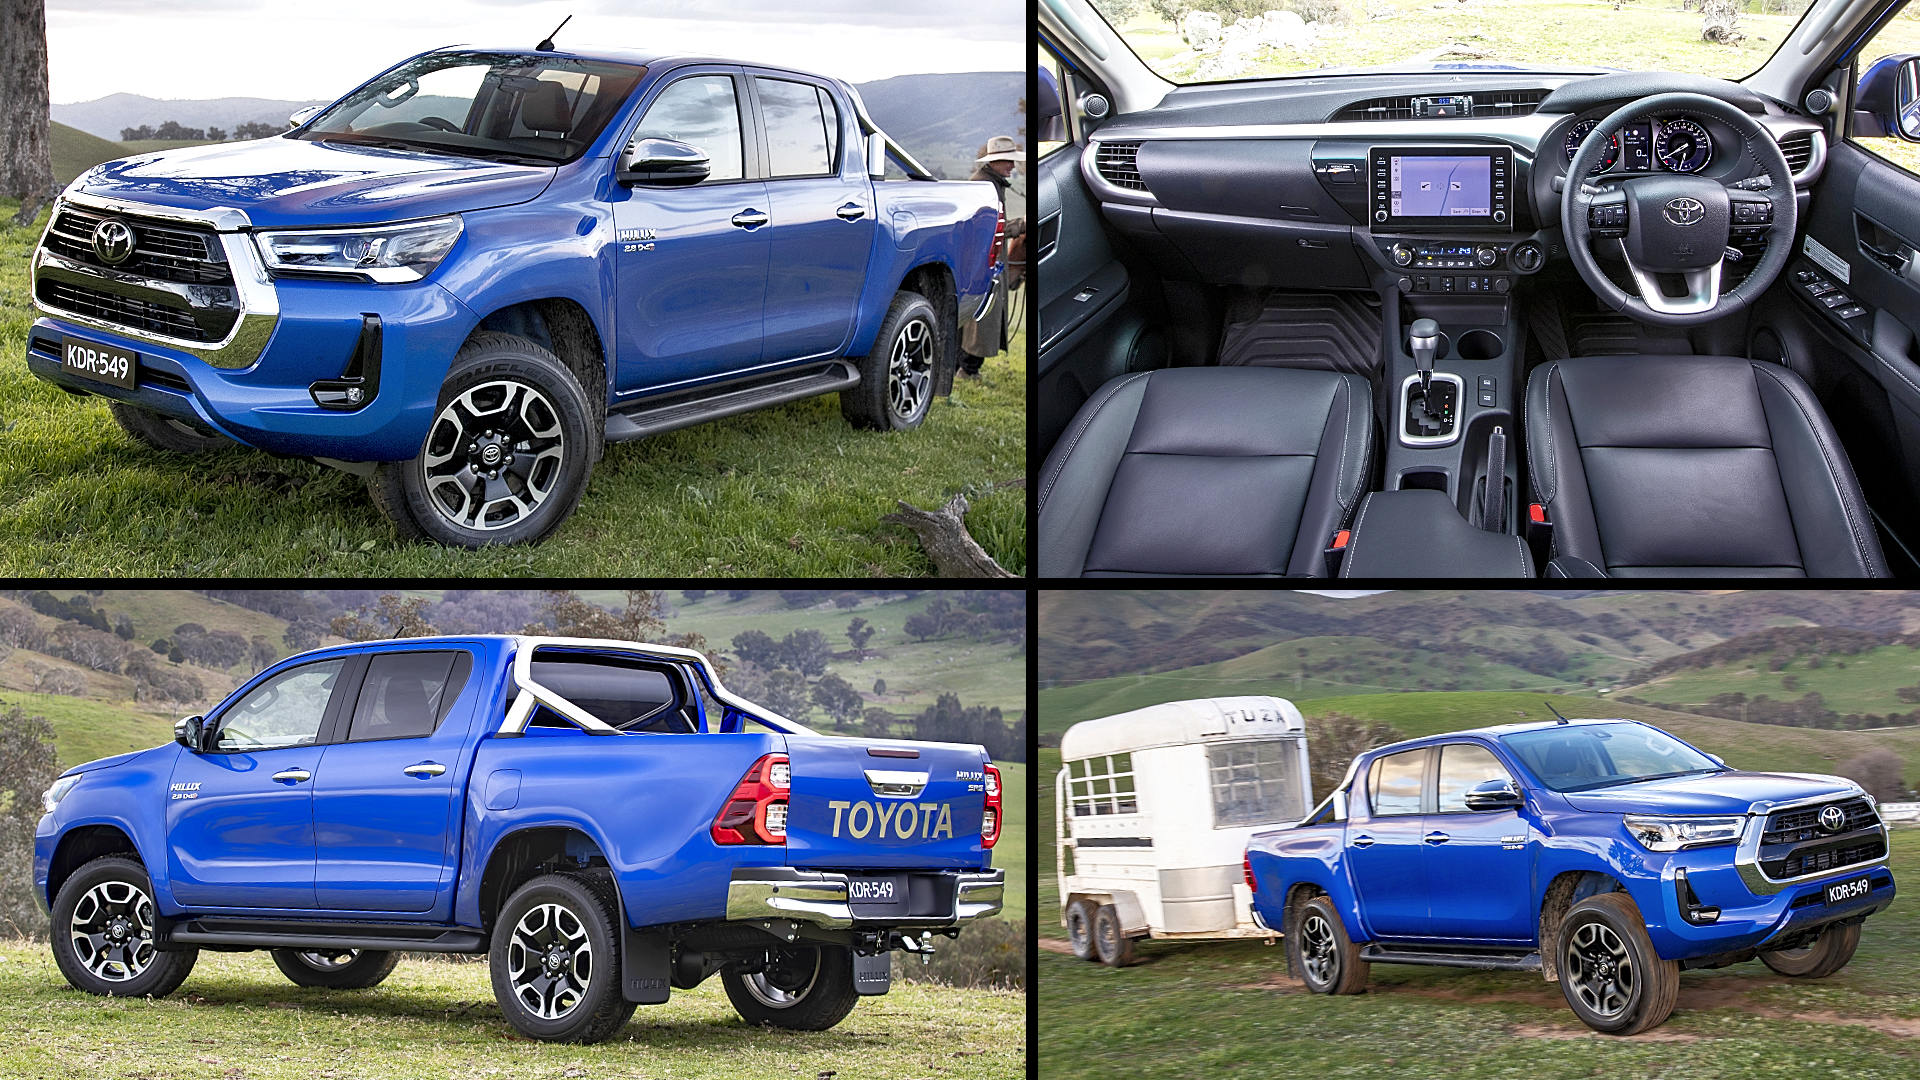 2021 Toyota Hilux SR5 Double Cab Blue Pickup Pictures